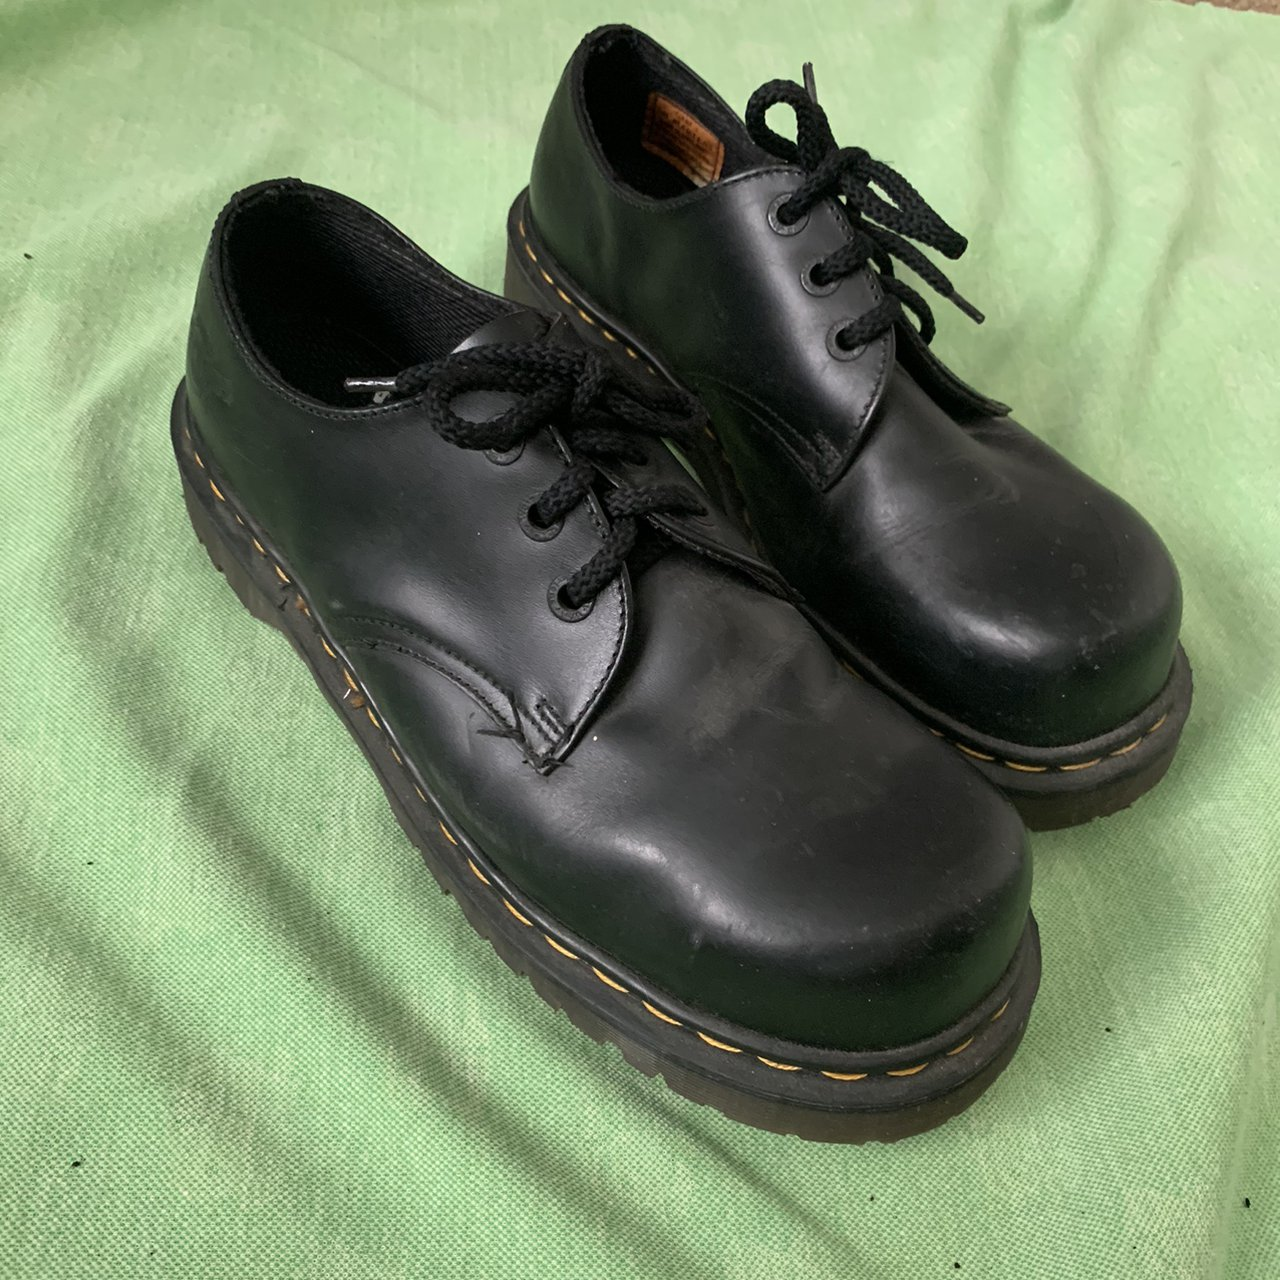 wow wow excellent condition low doc